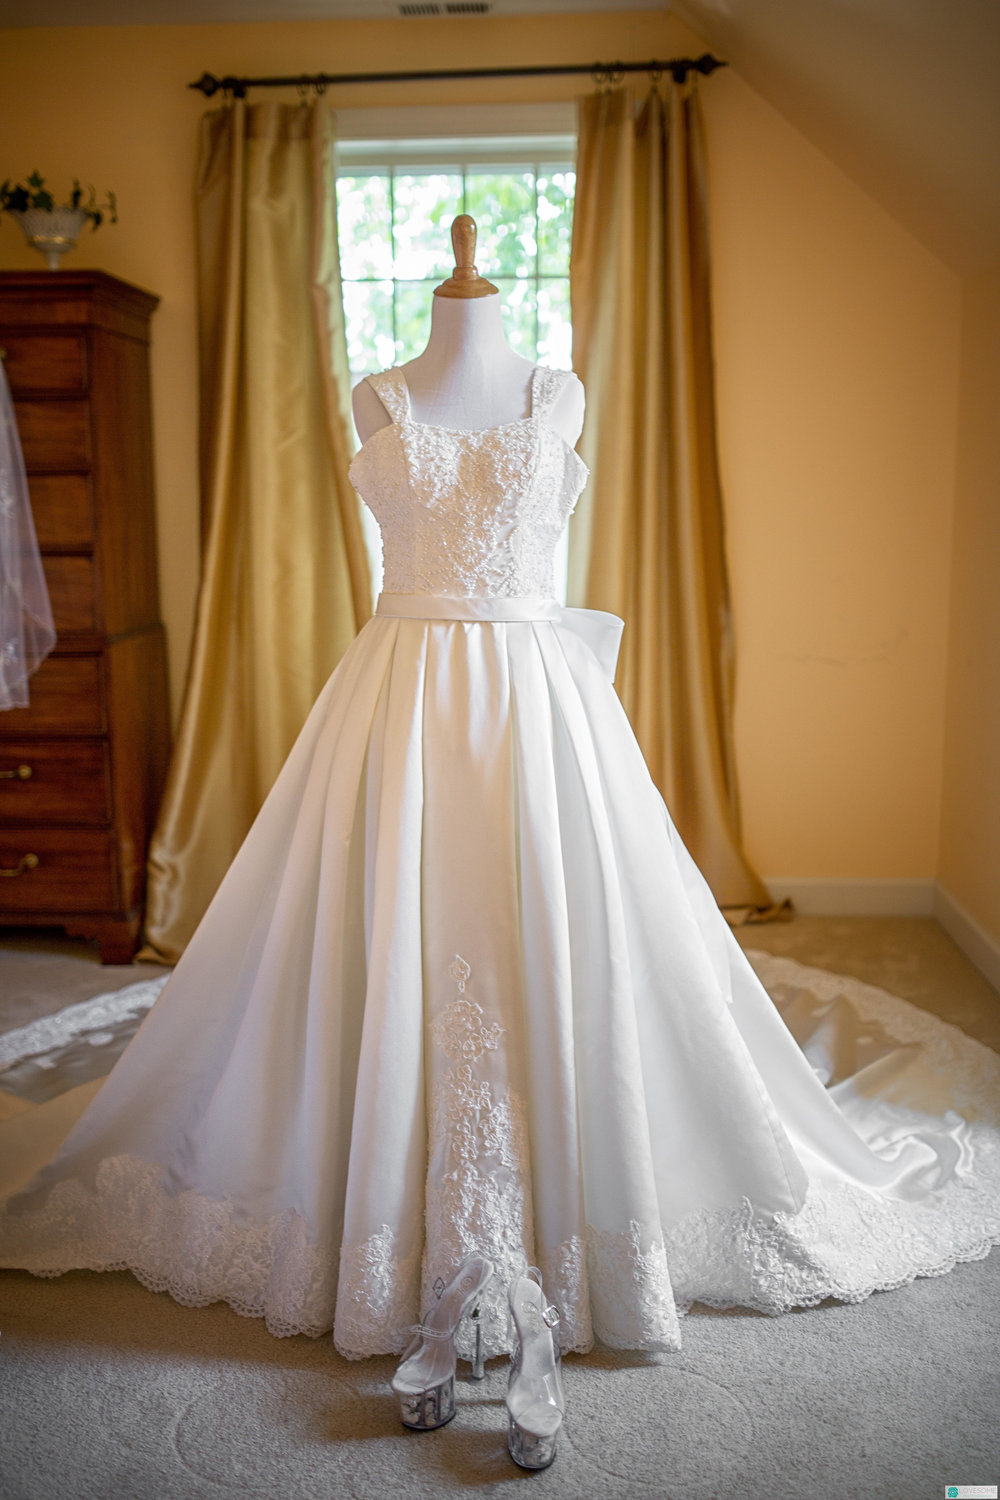 Ashley S - Custom Wedding Dresses by AvailCo (19 of 30).jpg